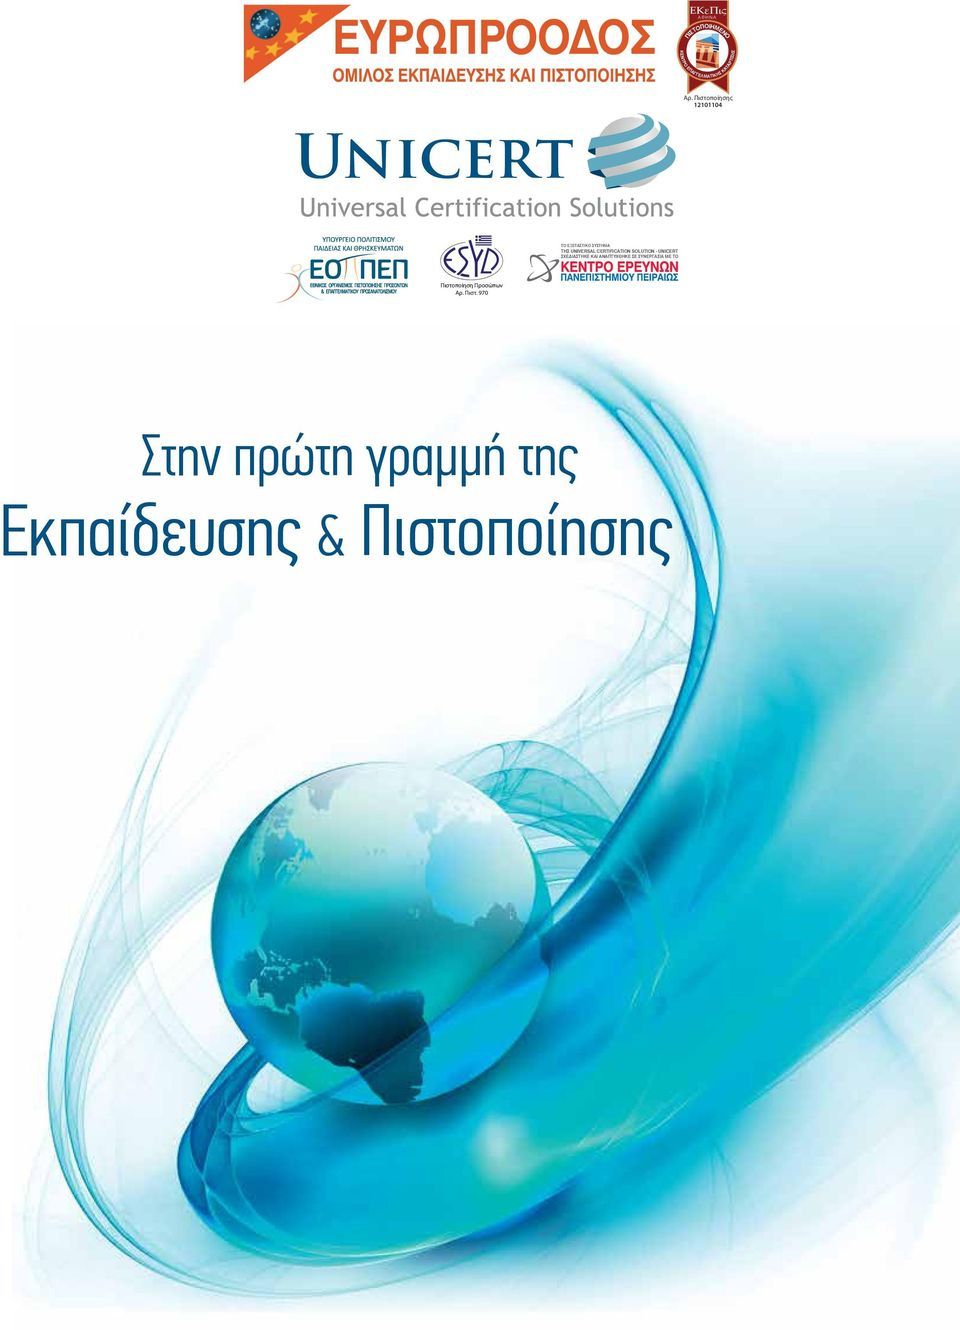 SOLUTION - UNICERT ΣΧΕ ΙΑΣΤΗΚΕ ΚΑΙ ΑΝΑΠΤΥΧΘΗΚΕ ΣΕ ΣΥΝΕΡΓΑΣΙΑ ΜΕ ΤΟ